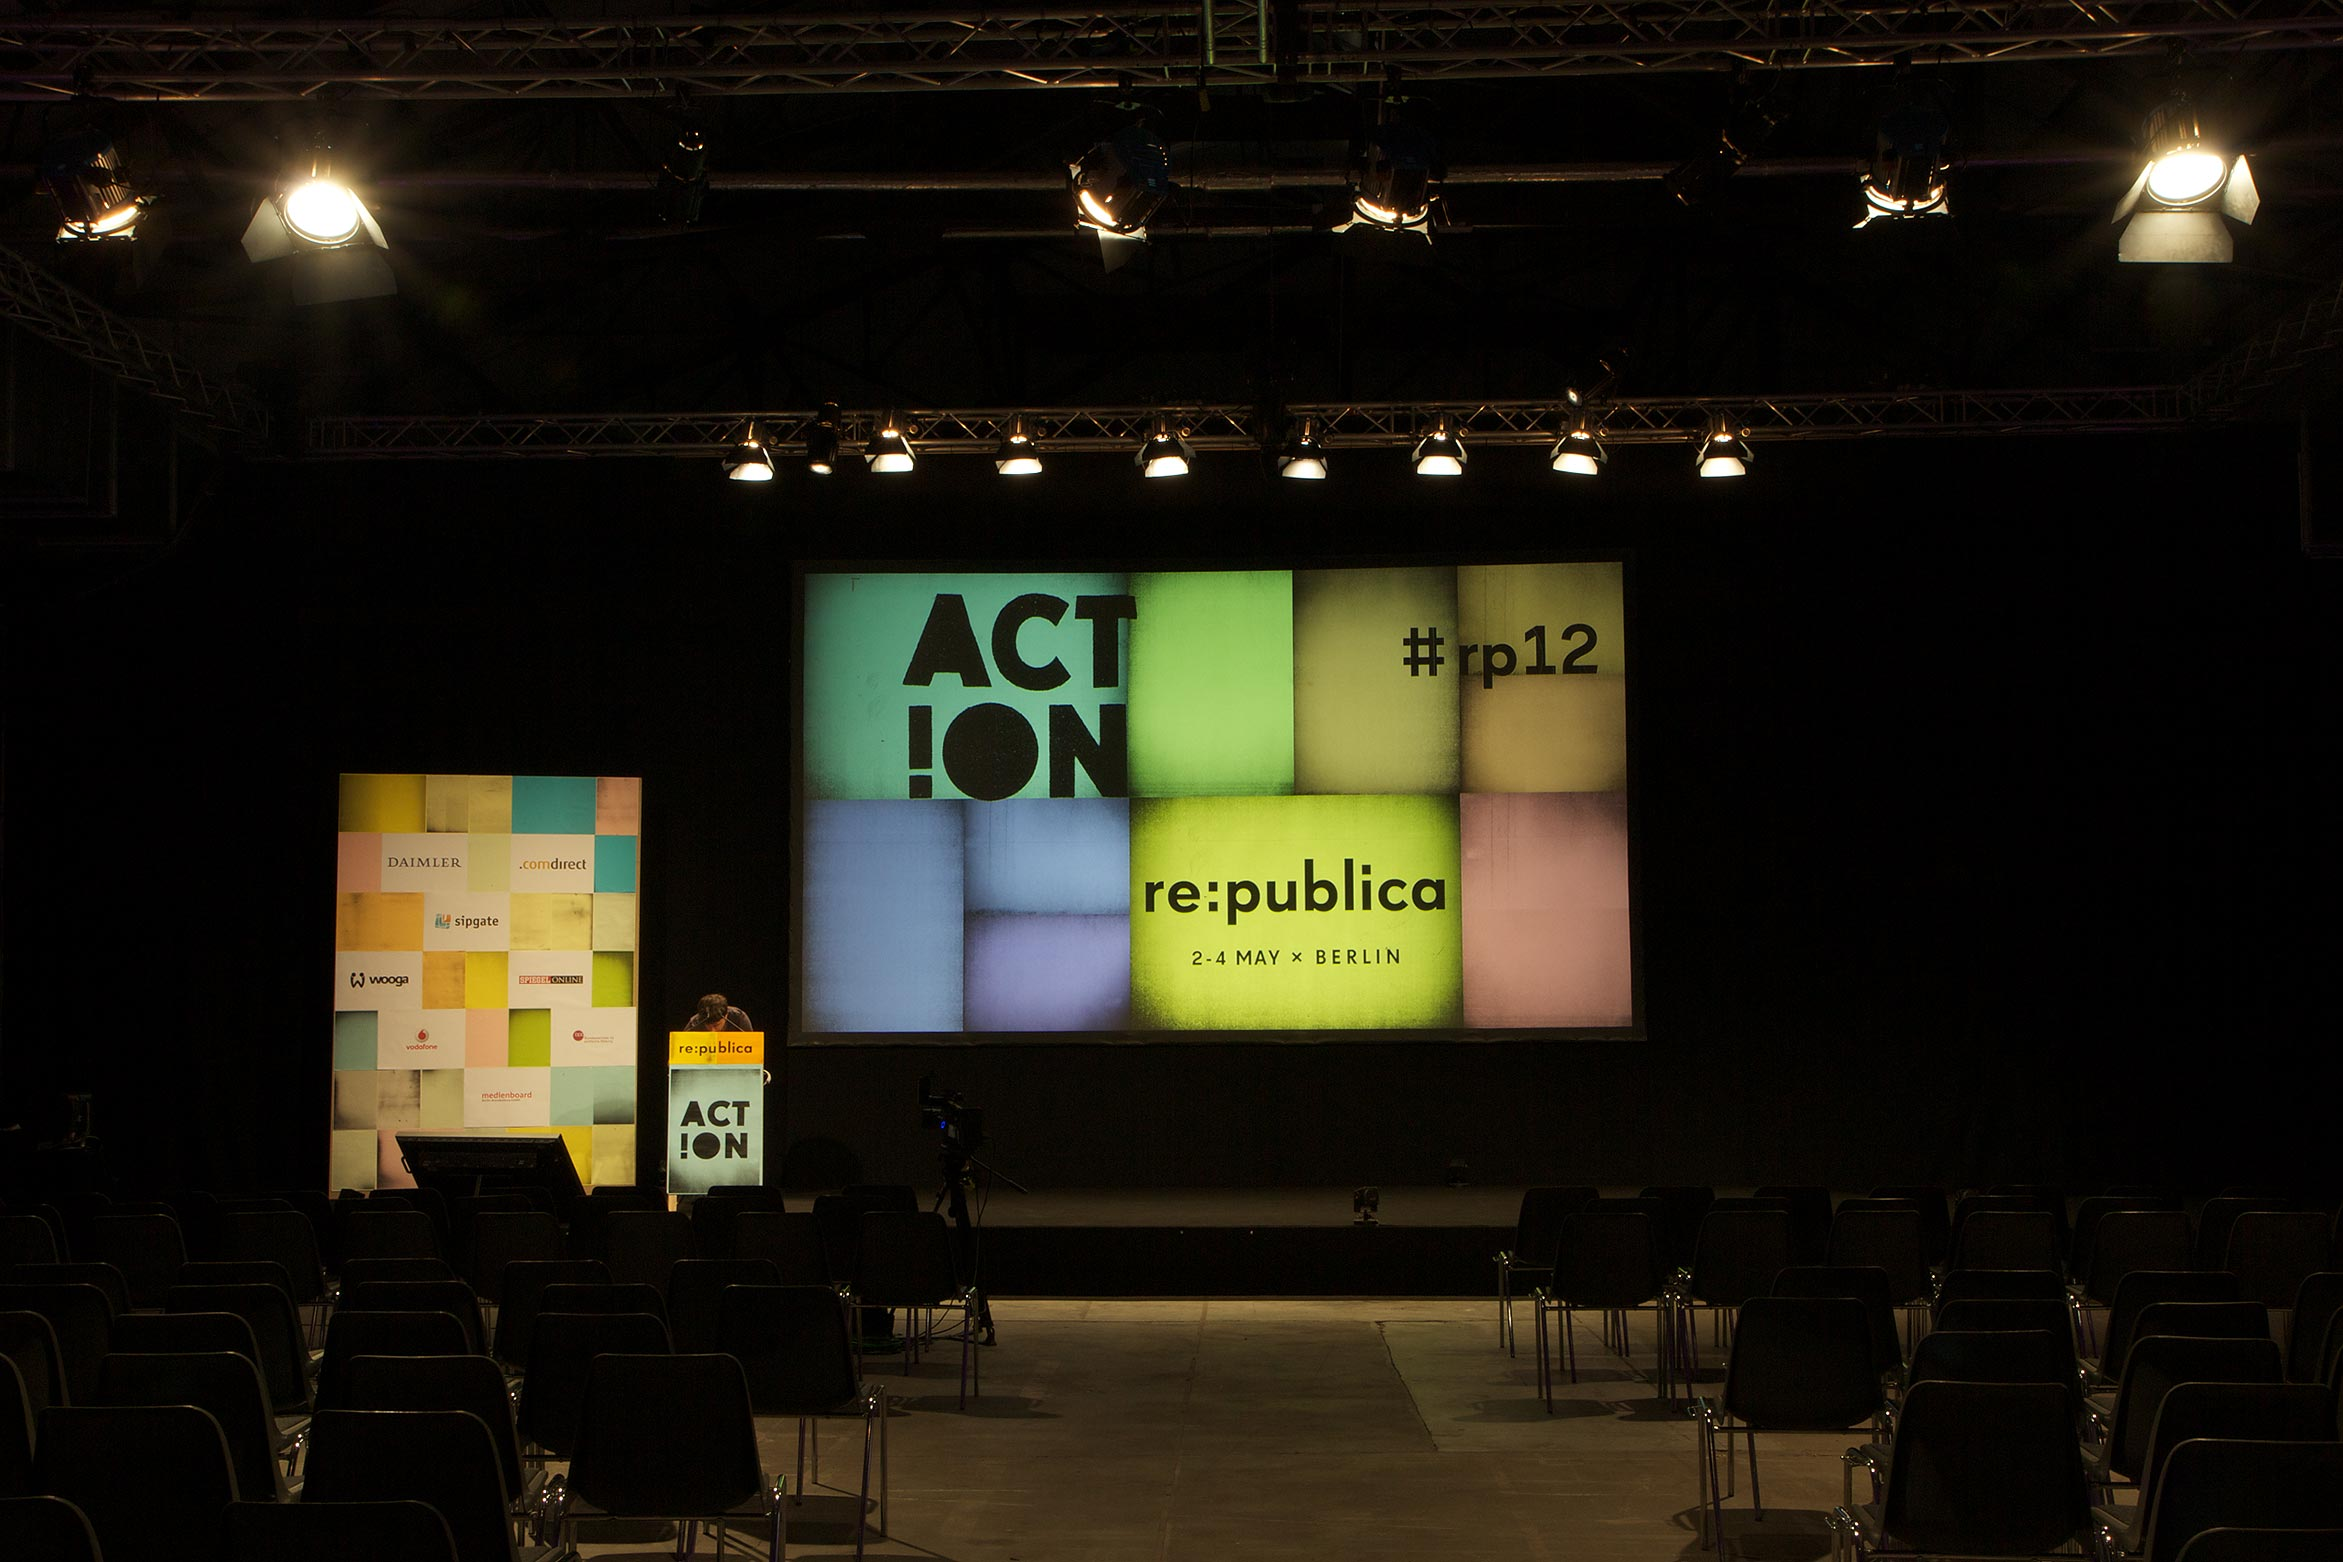 One of the stages at re:publica.